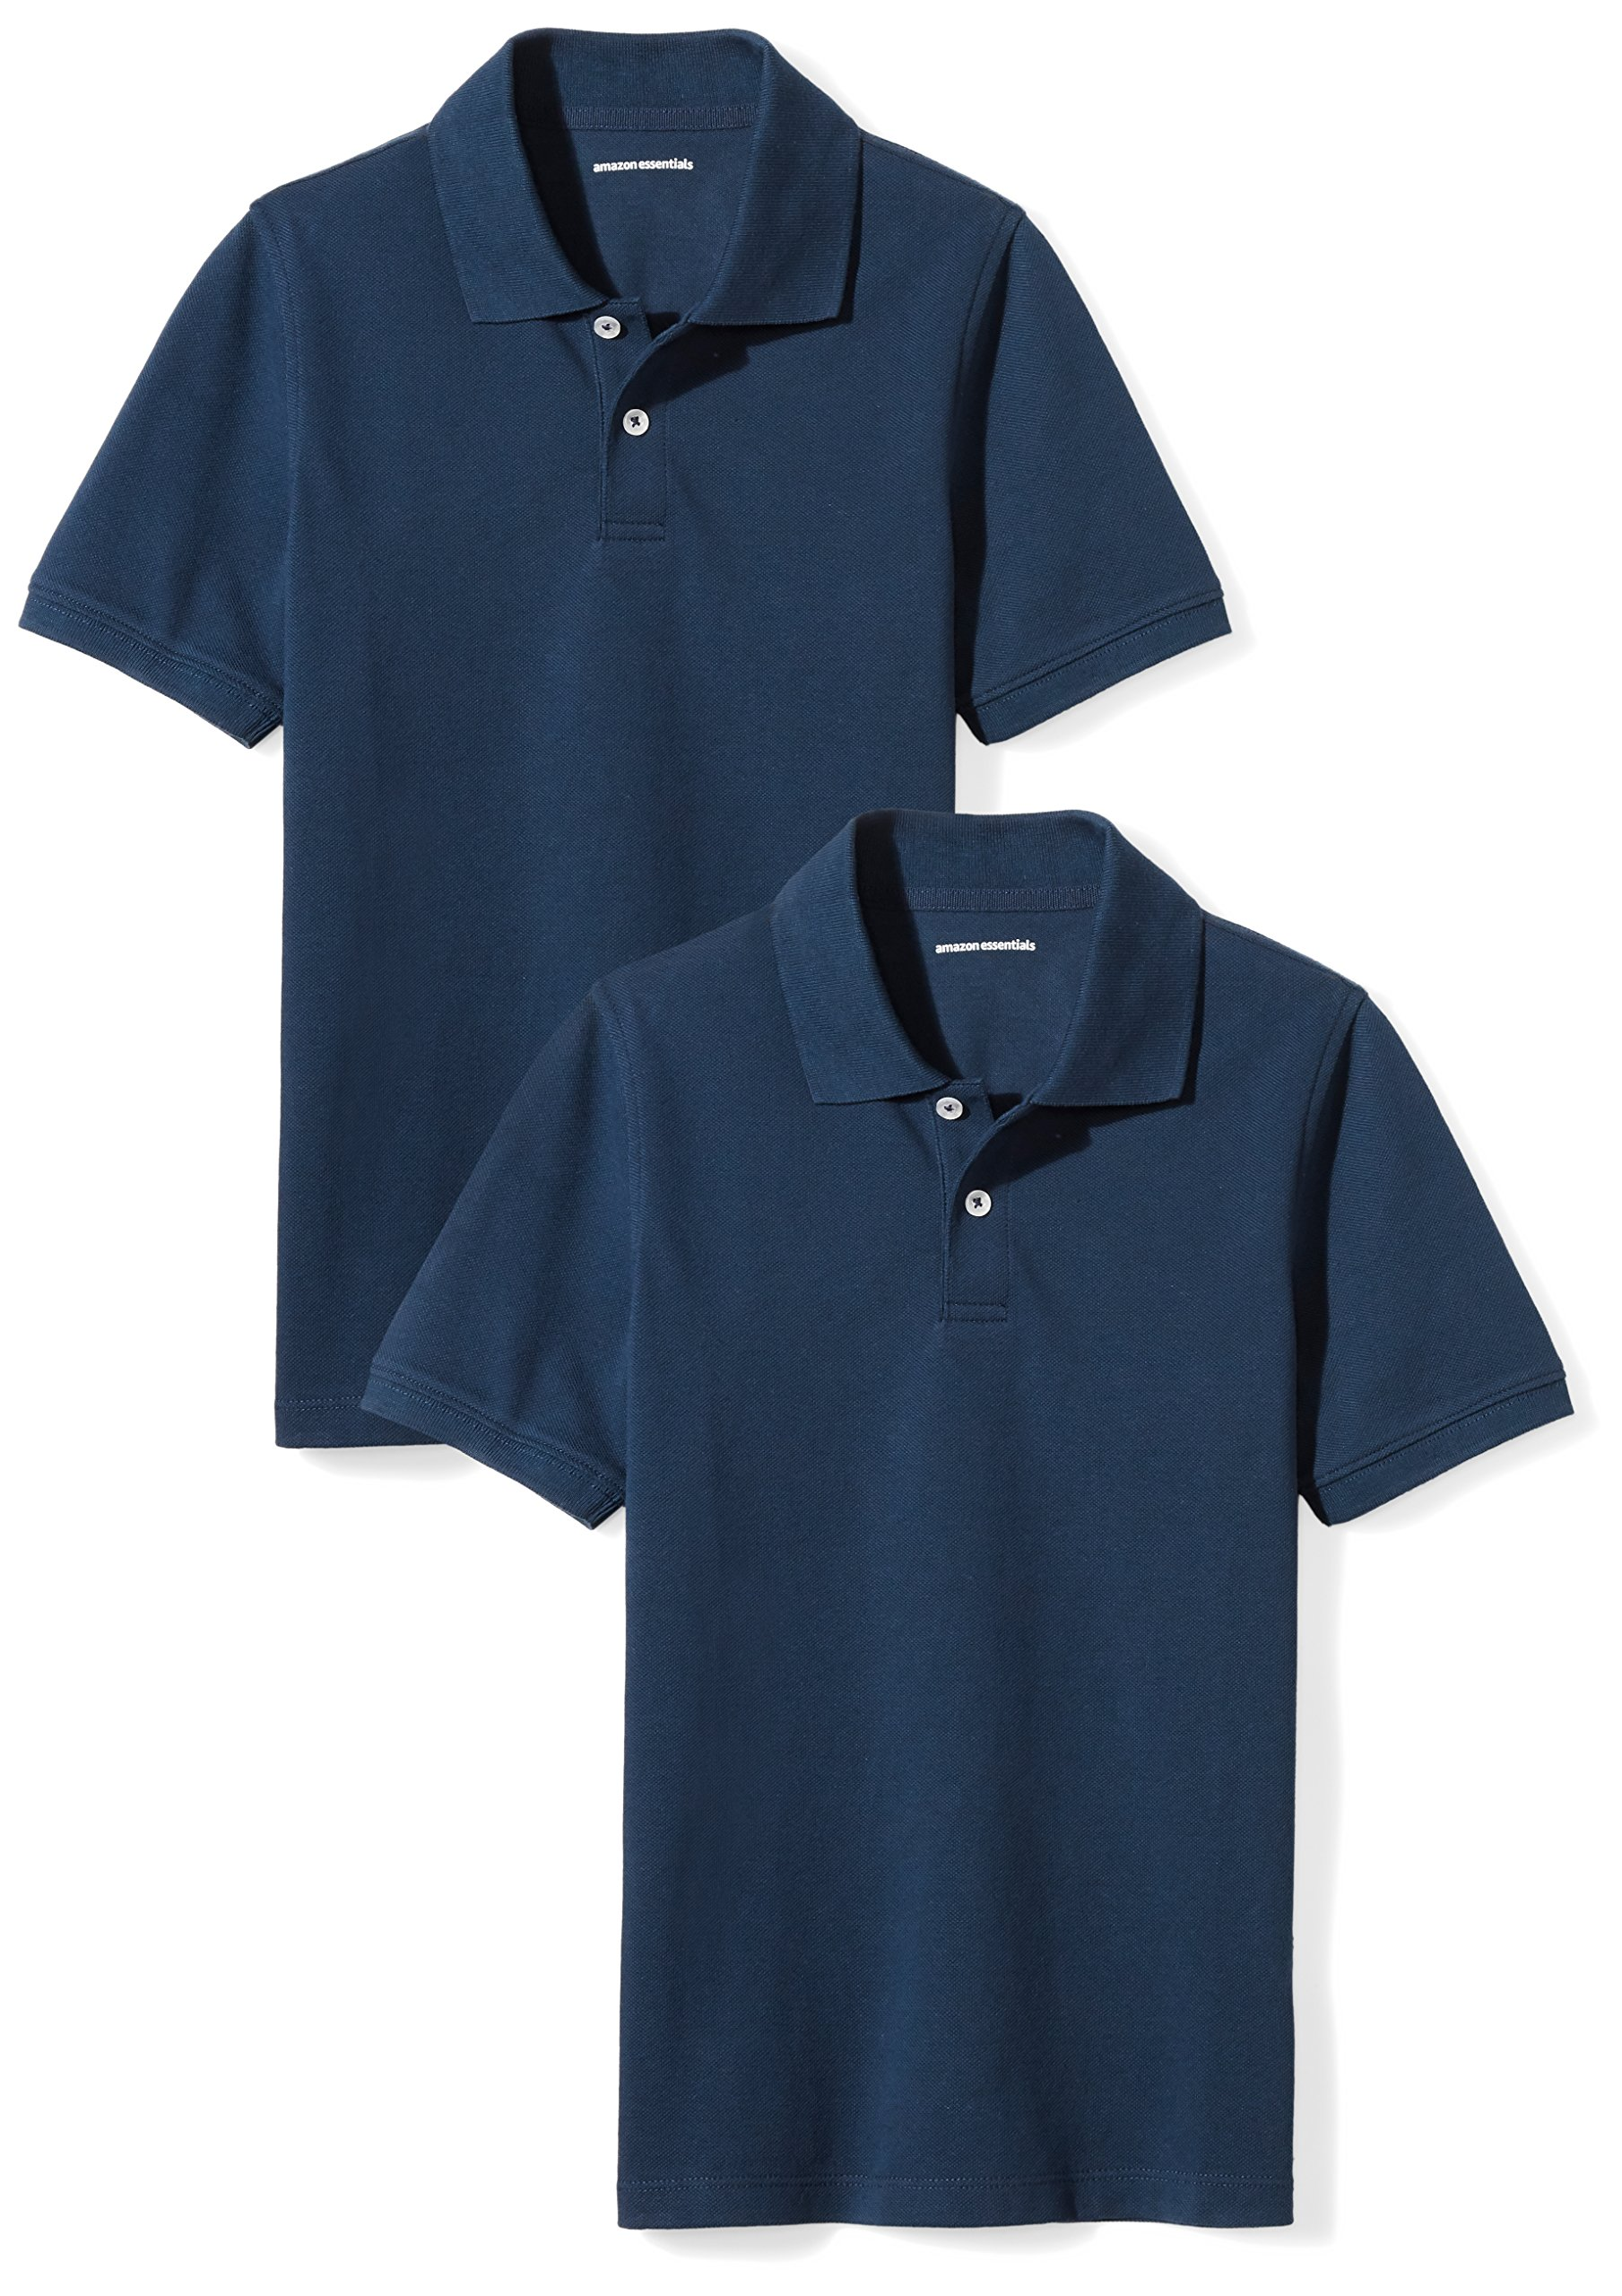 Amazon Essentials Boys' 2-Pack Uniform Pique Polo, Navy/Navy, L (10)